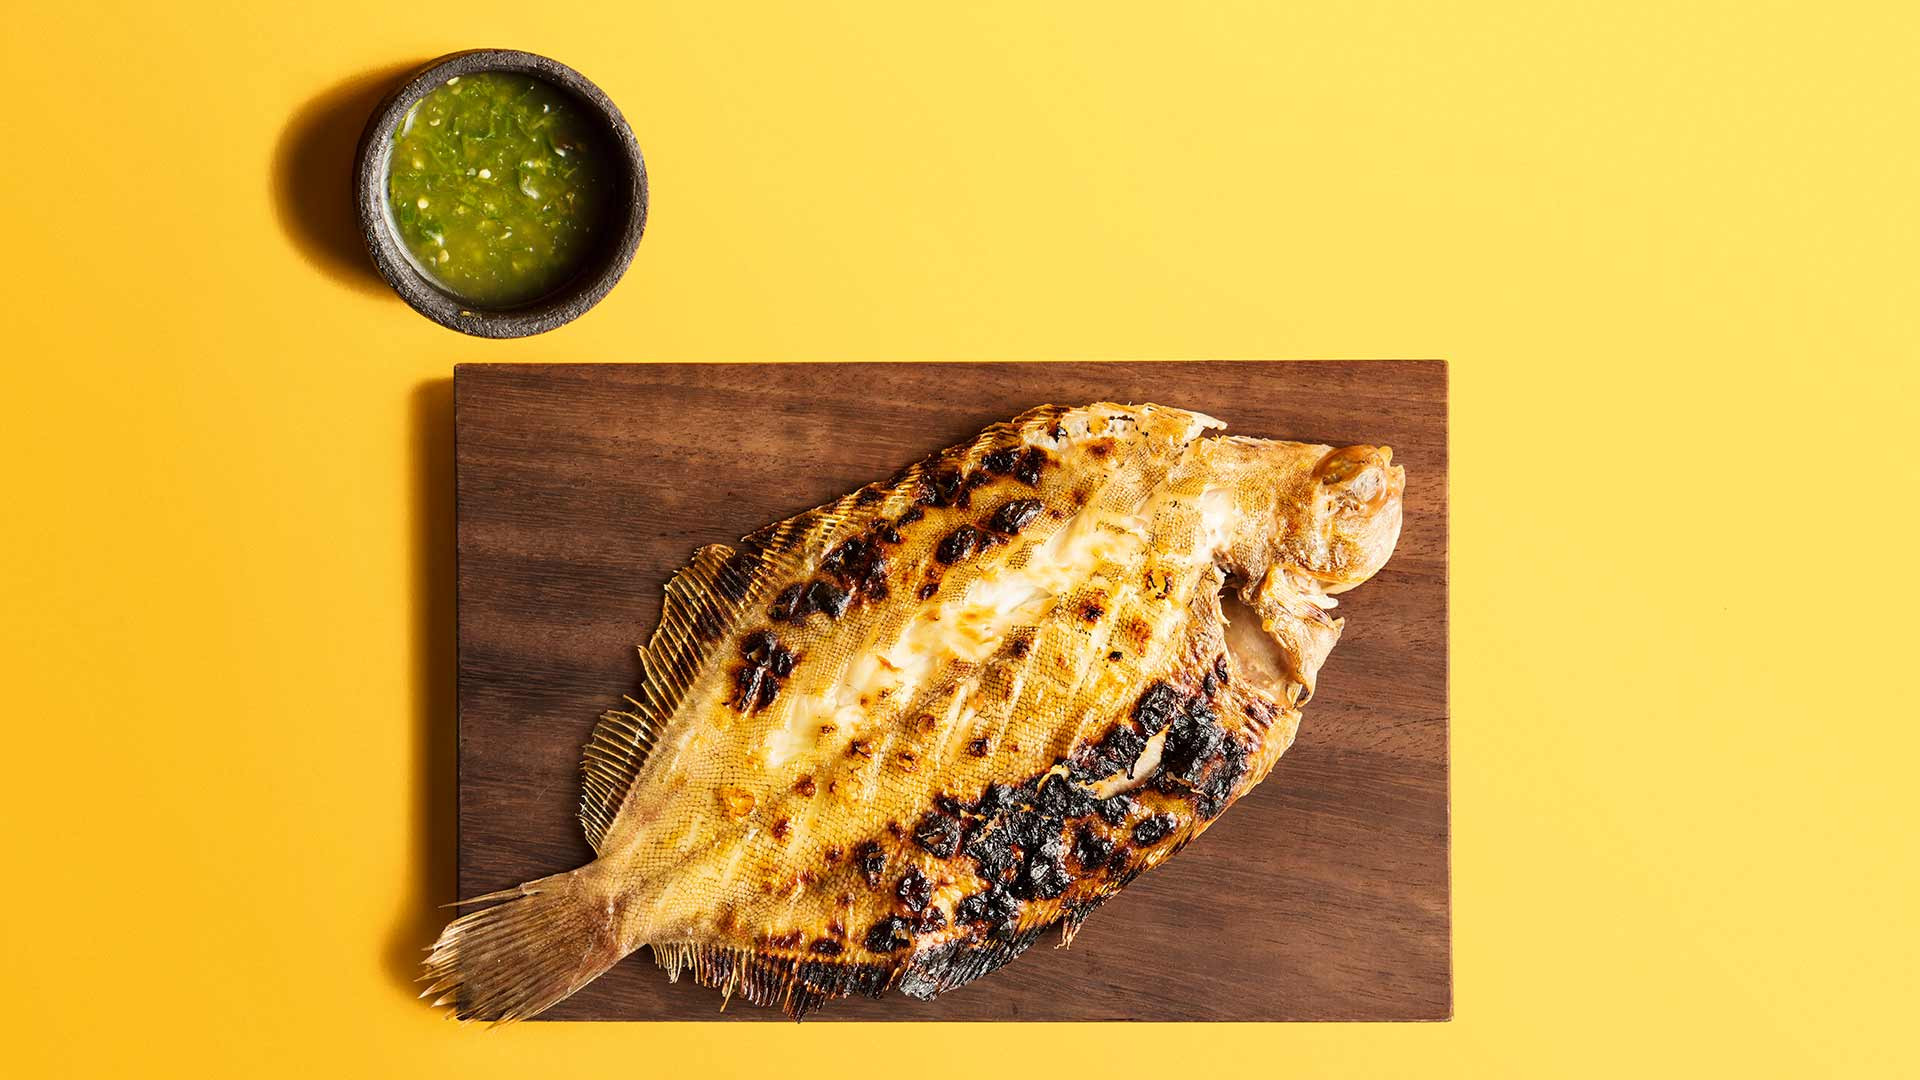 Slow-charcoal-grilled sole from Kiln